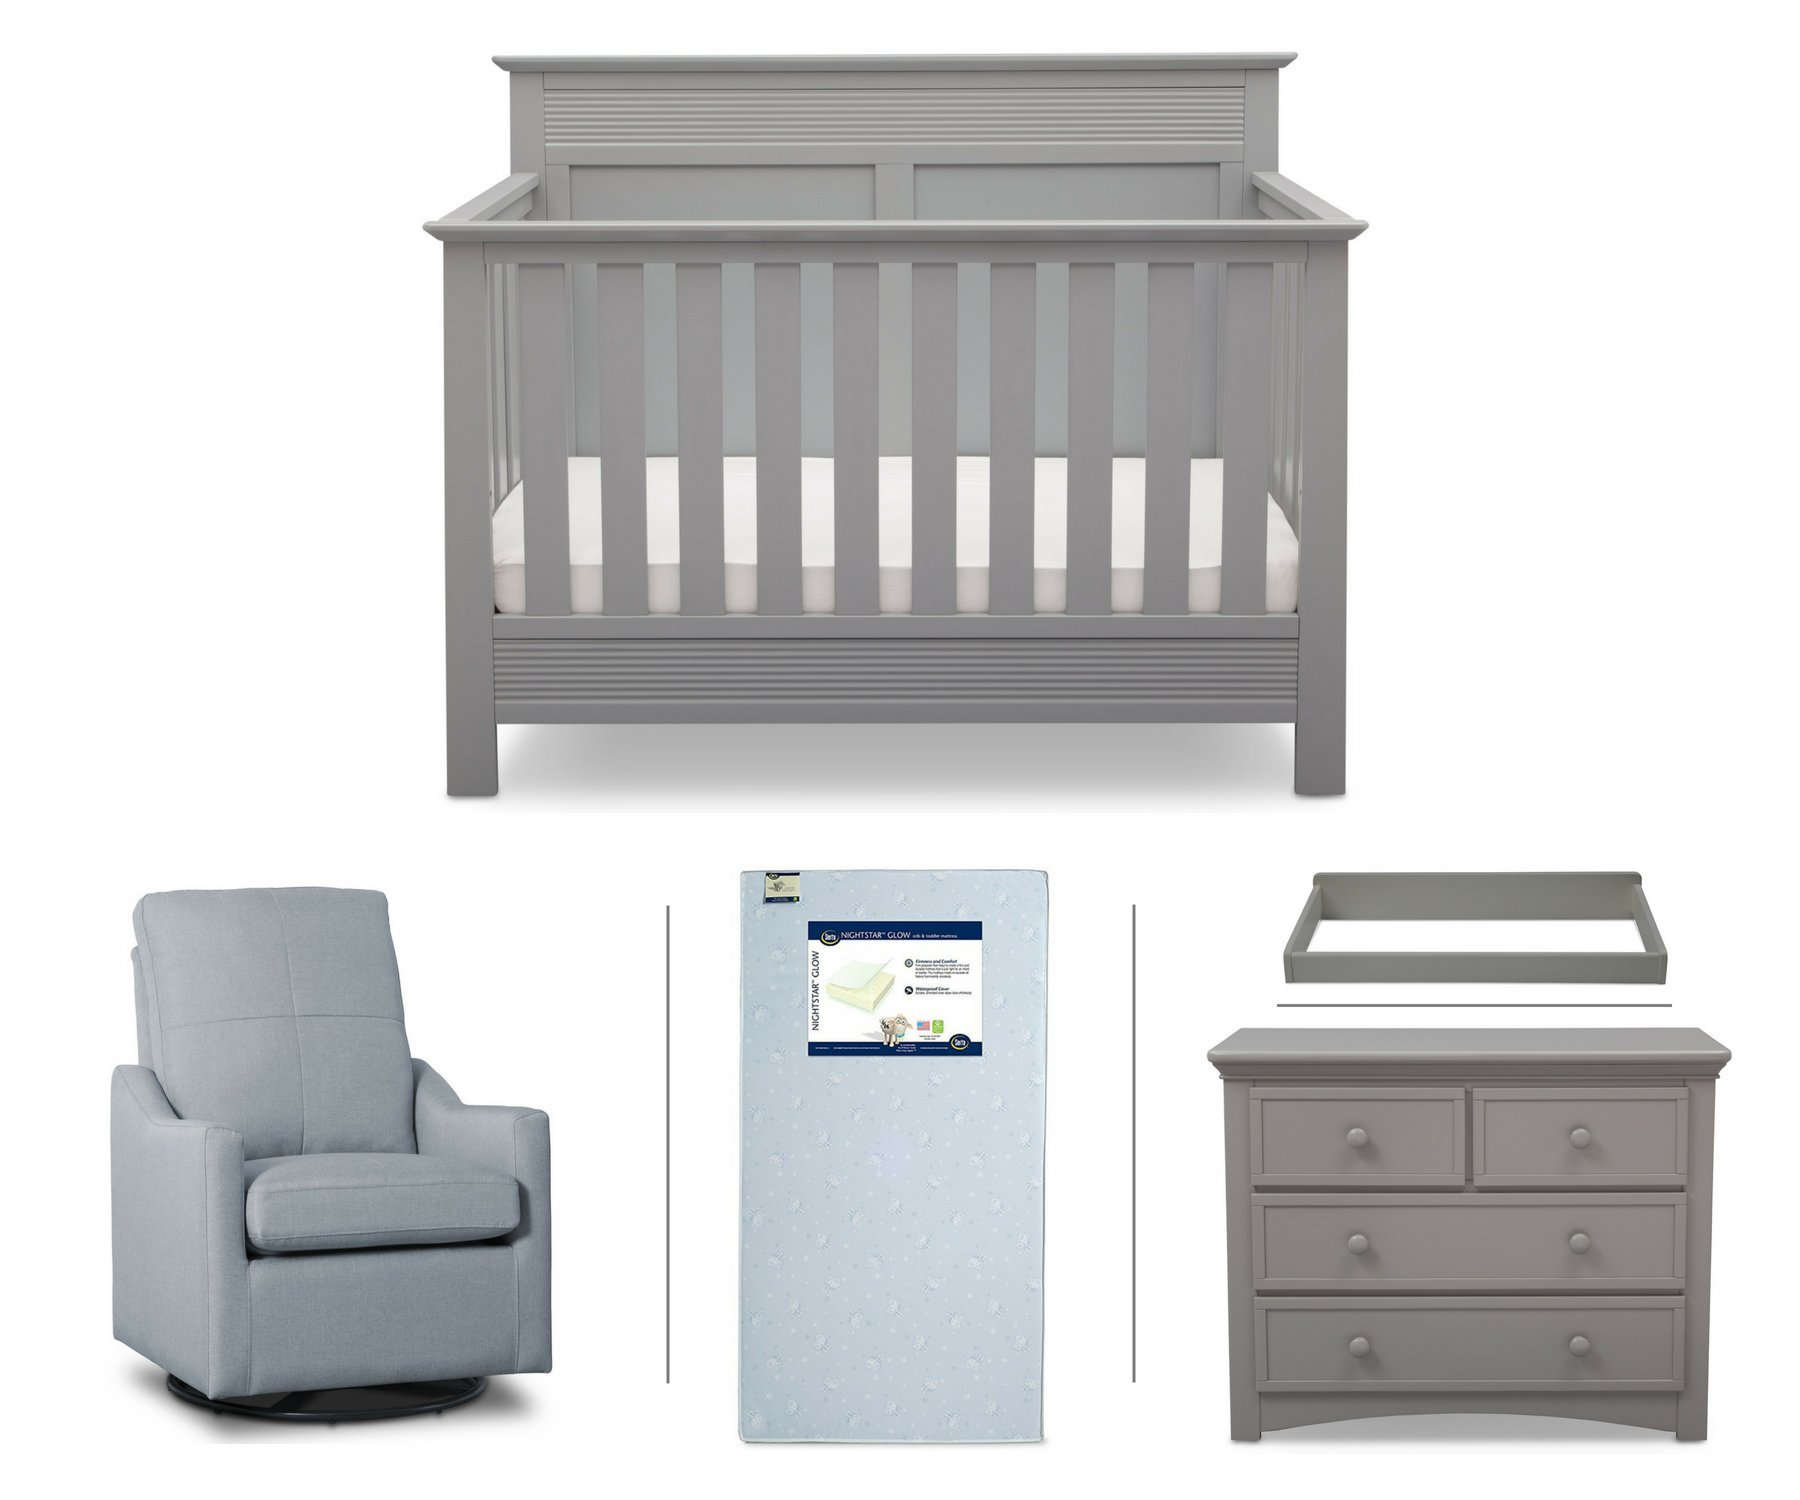 Serta Fall River 5-Piece Nursery Furniture Set (Serta Convertible Crib, 4-Drawer Dresser, Changing Top, Serta Crib Mattress, Glider), Grey/Light Blue